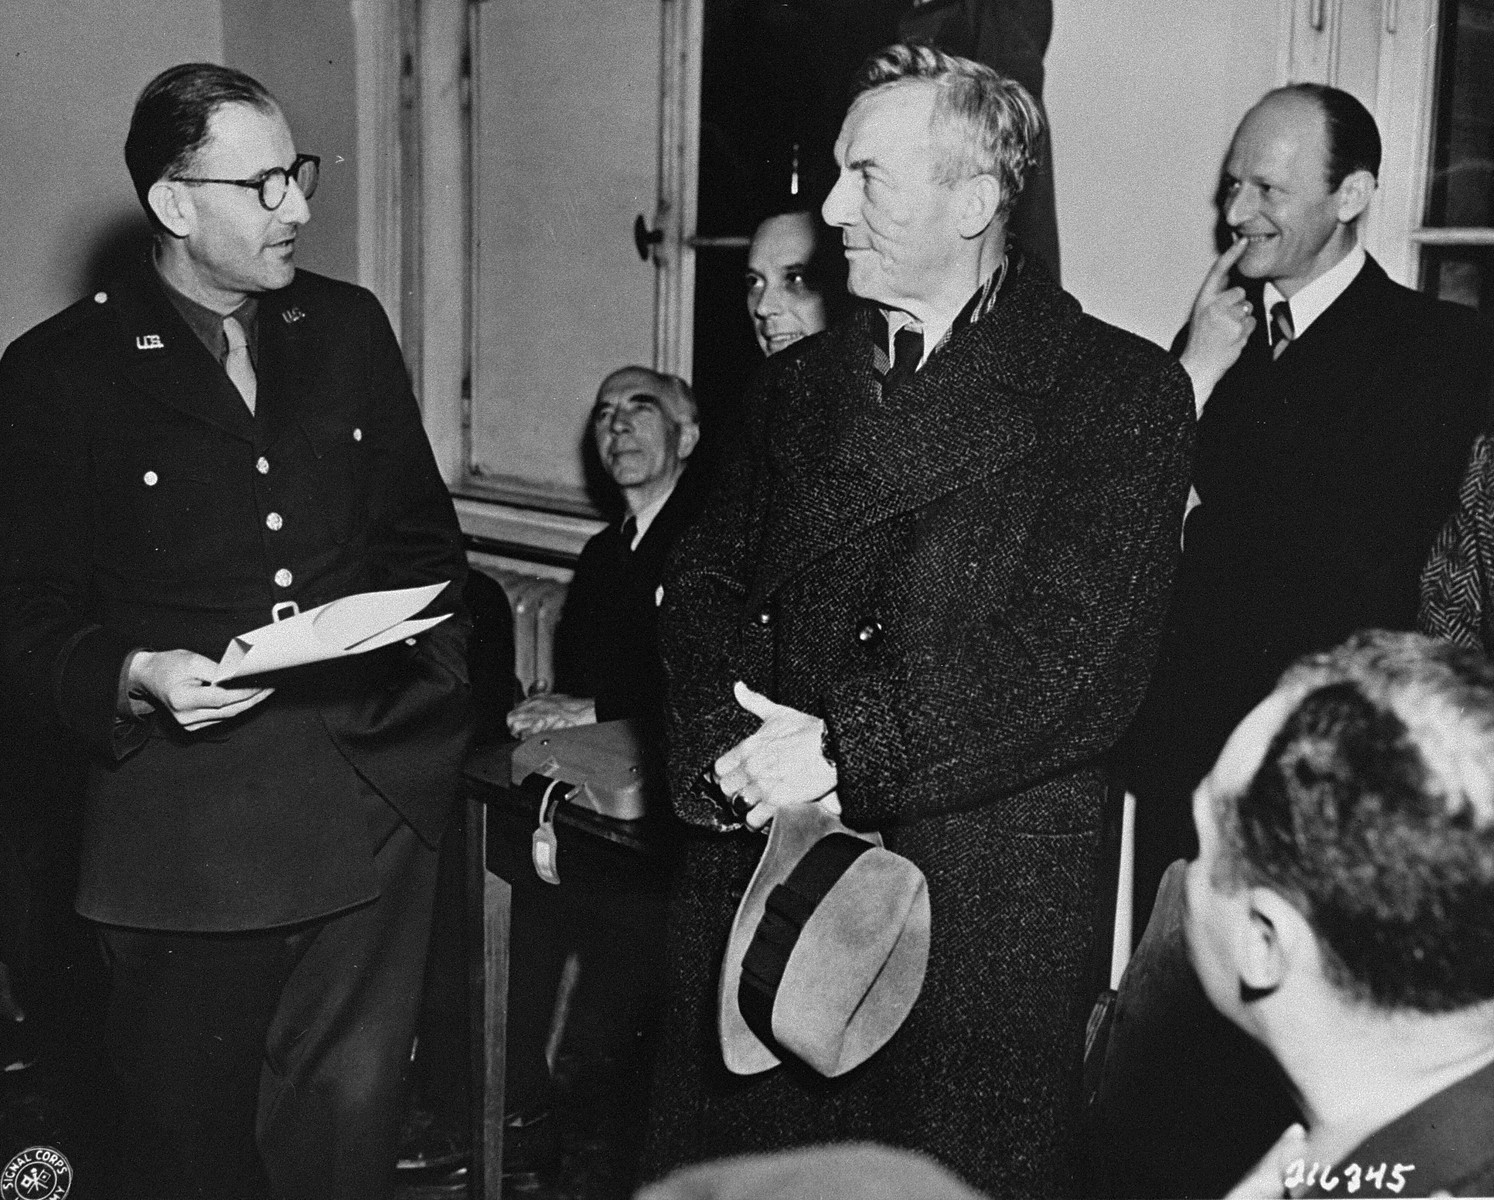 Dr. Hans Marx, the lawyer representing Julius Streicher, is introduced to a roomful of news correspondents before the beginning of the International Military Tribunal trial of war criminals at Nuremberg.